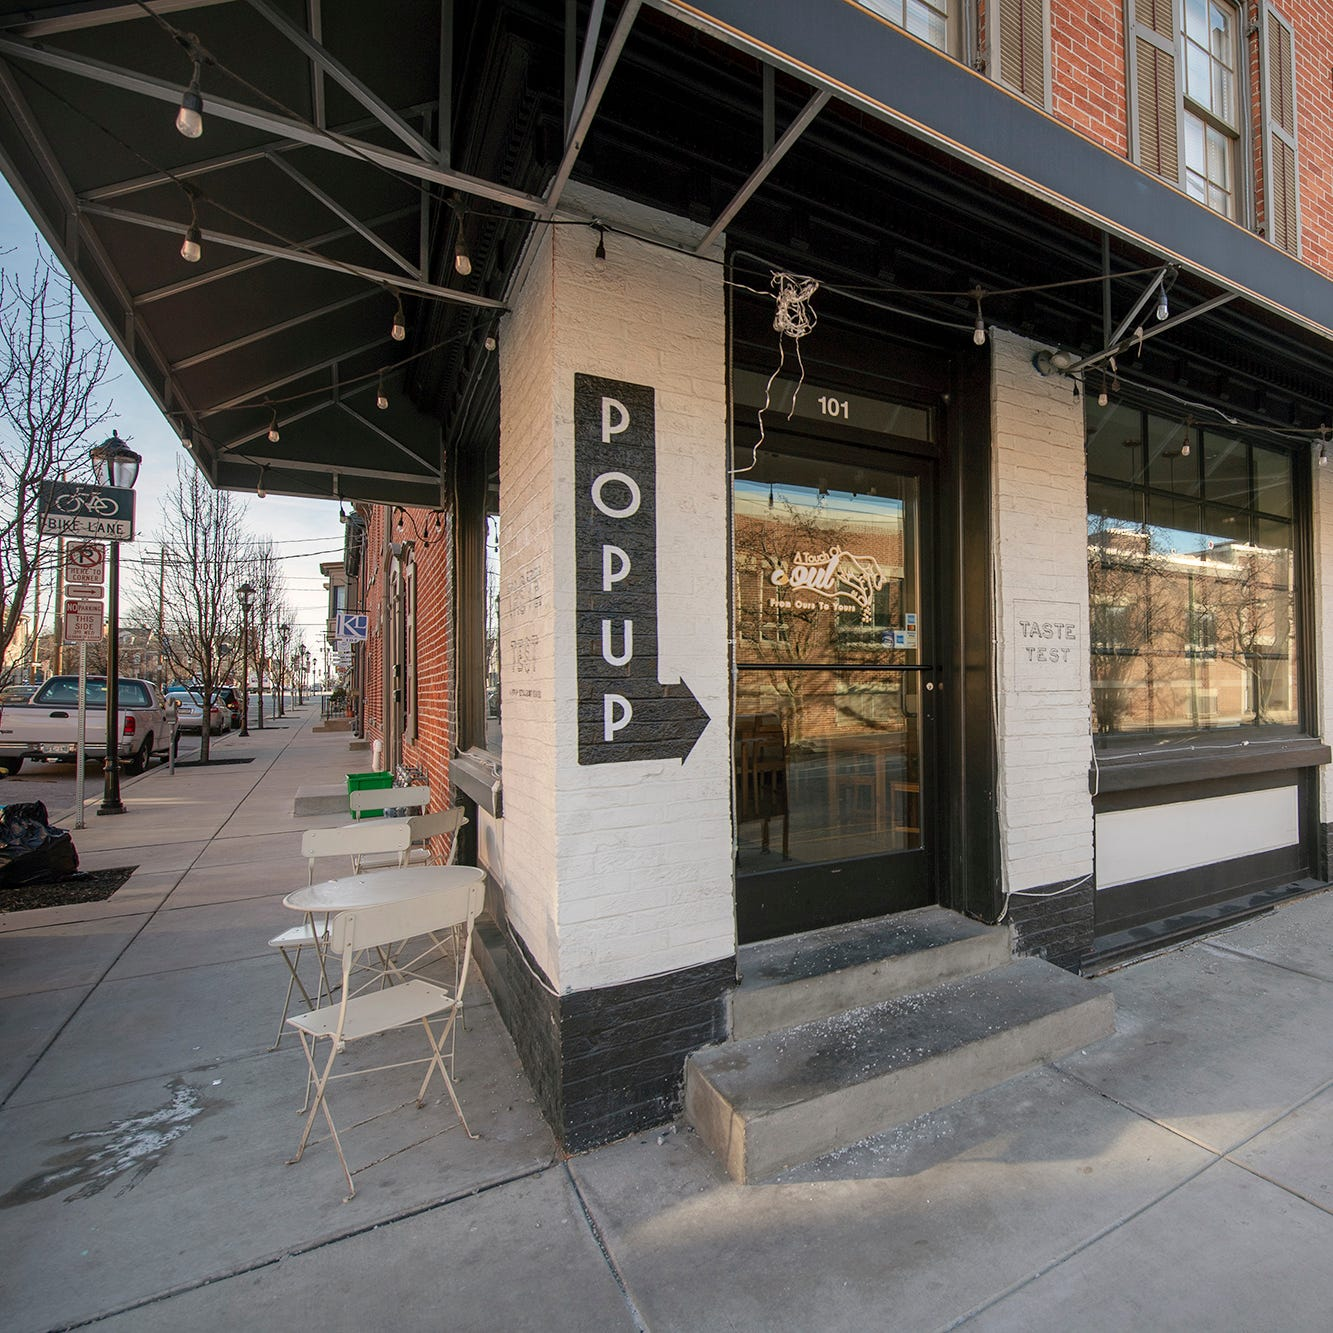 Aviano's Corner Trattoria finds a home at former Taste Taste location in downtown York